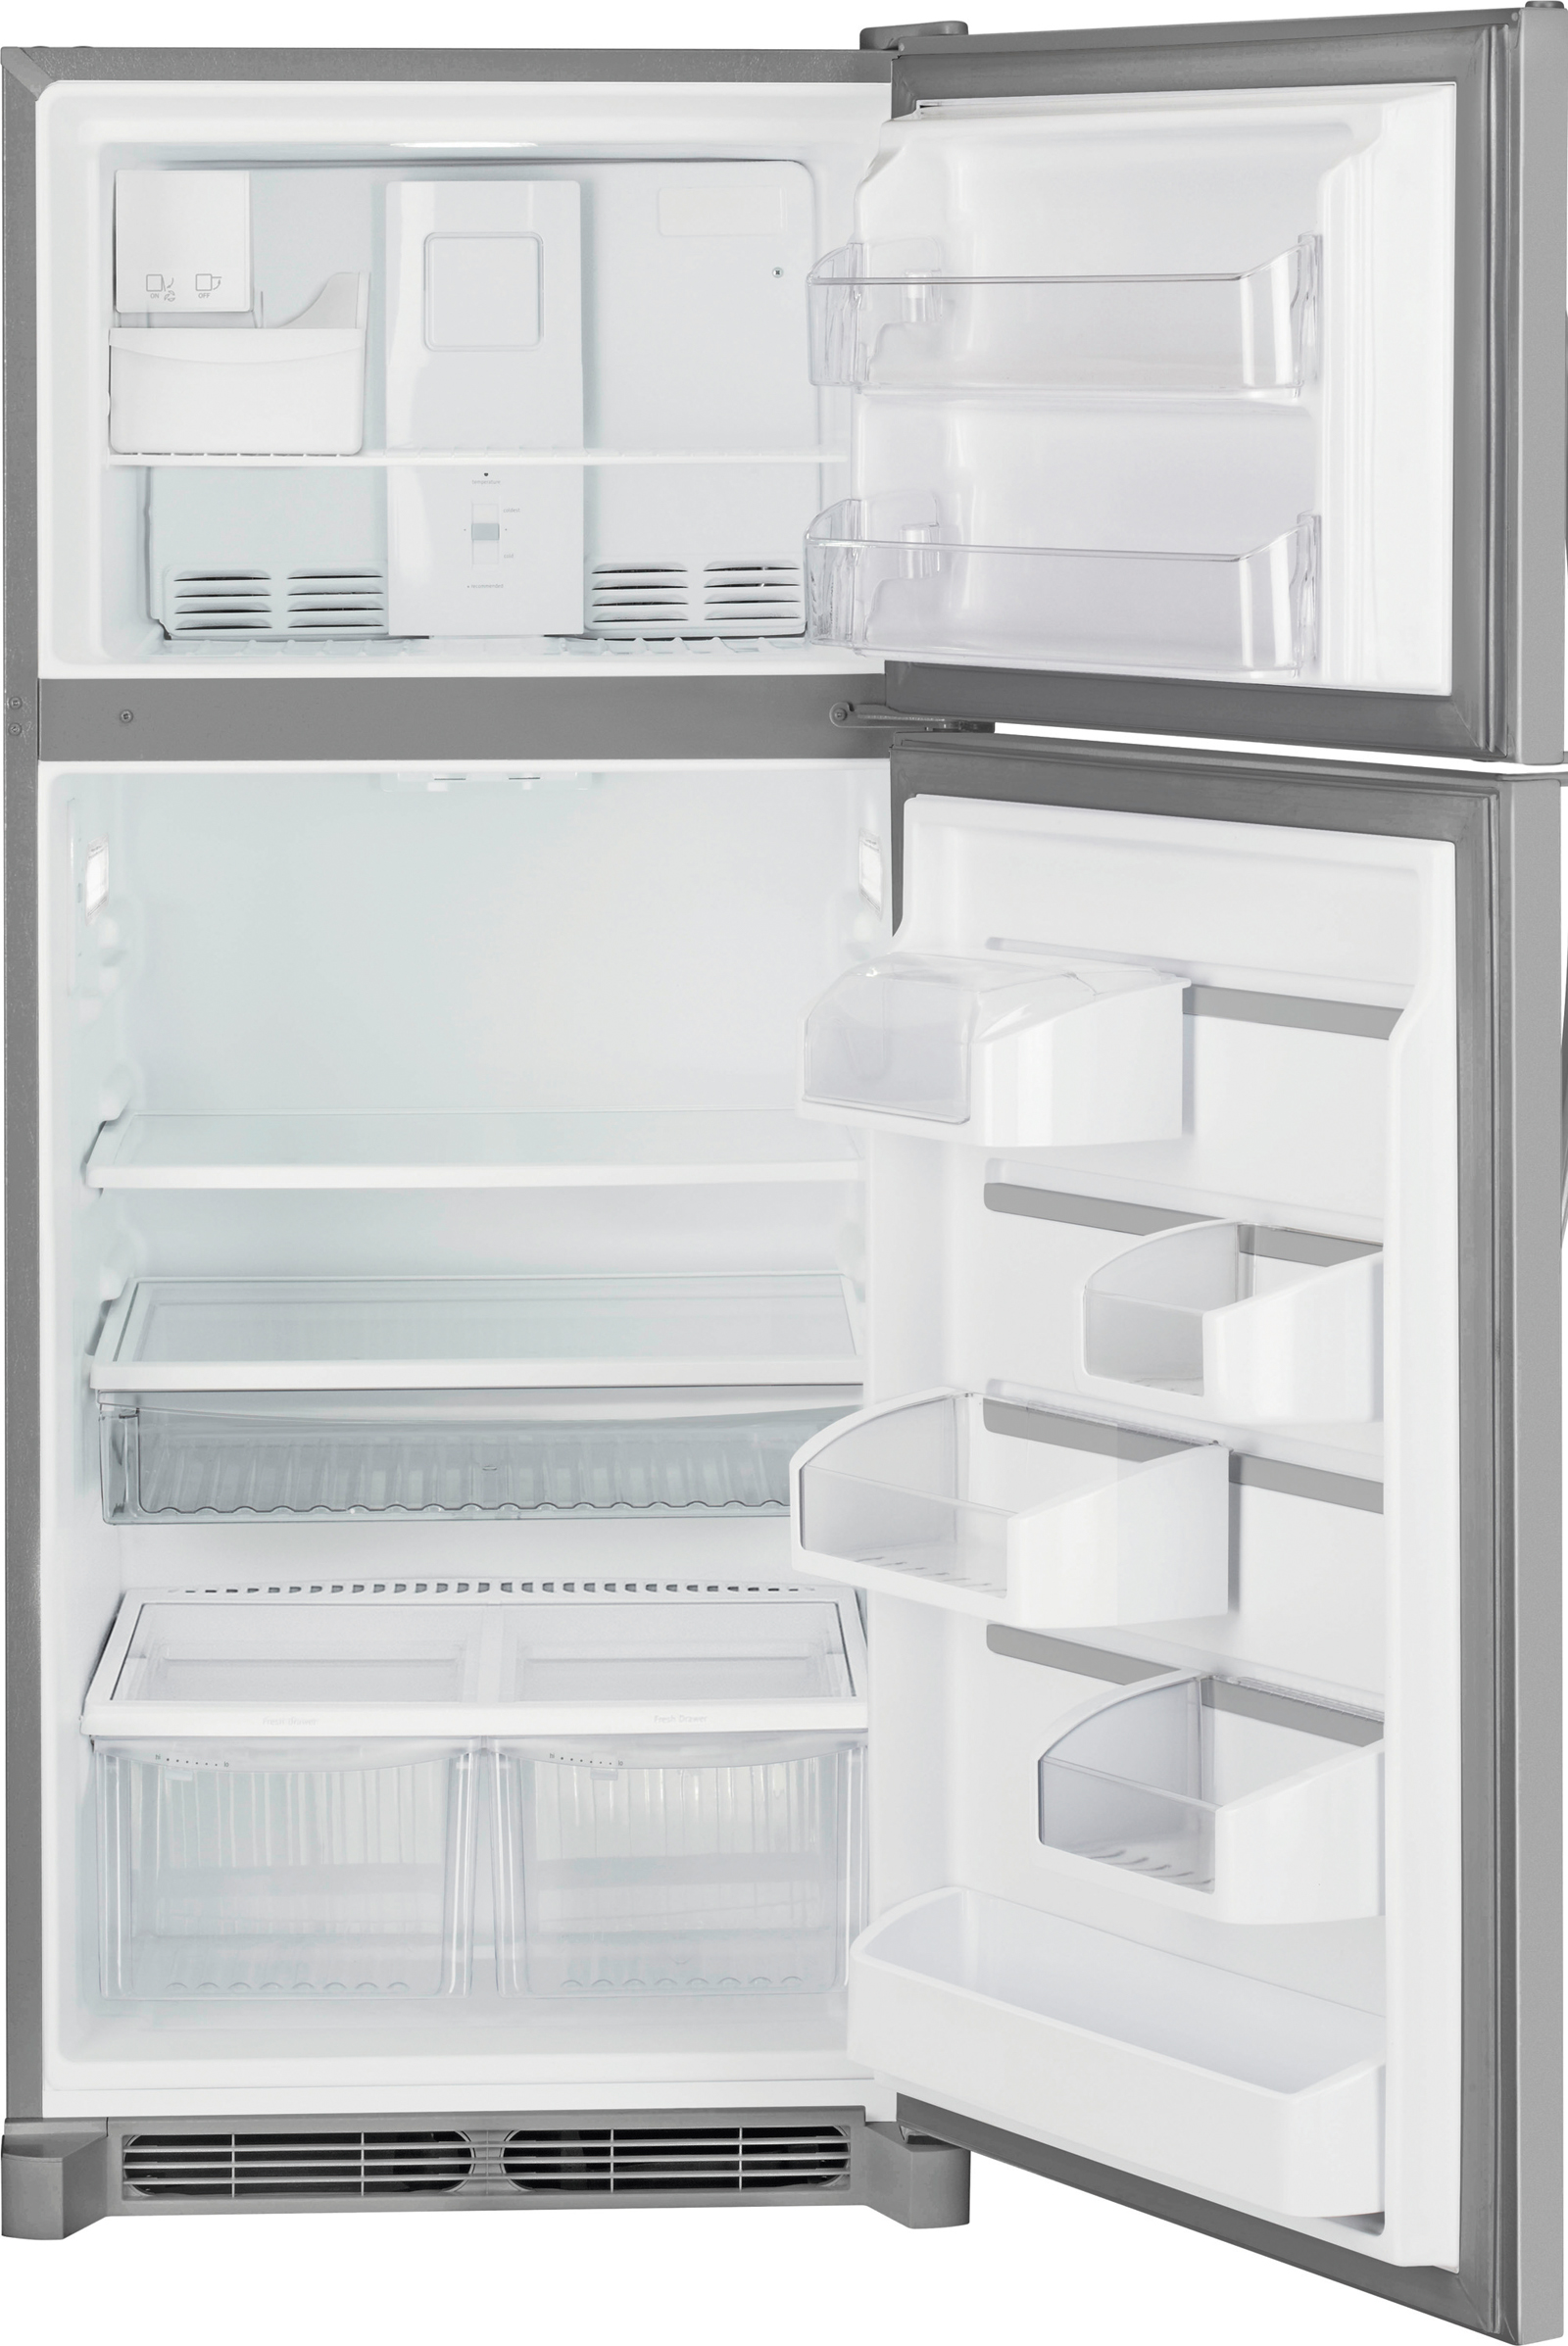 Kenmore 18 cu. ft. Top Mount Refrigerator - Stainless